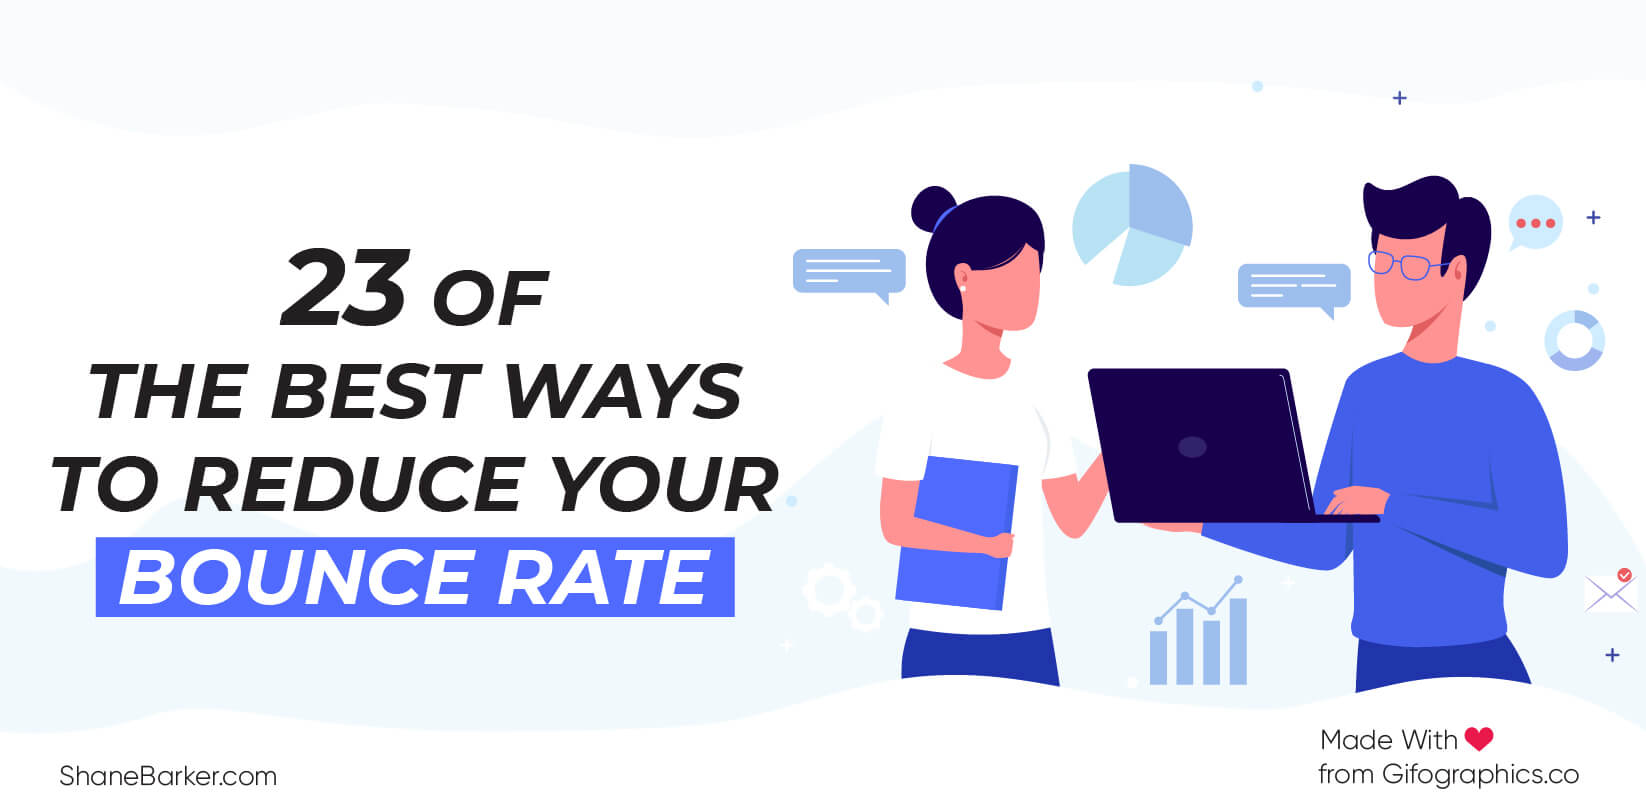 23 of the Best Ways to Reduce Your Bounce Rate